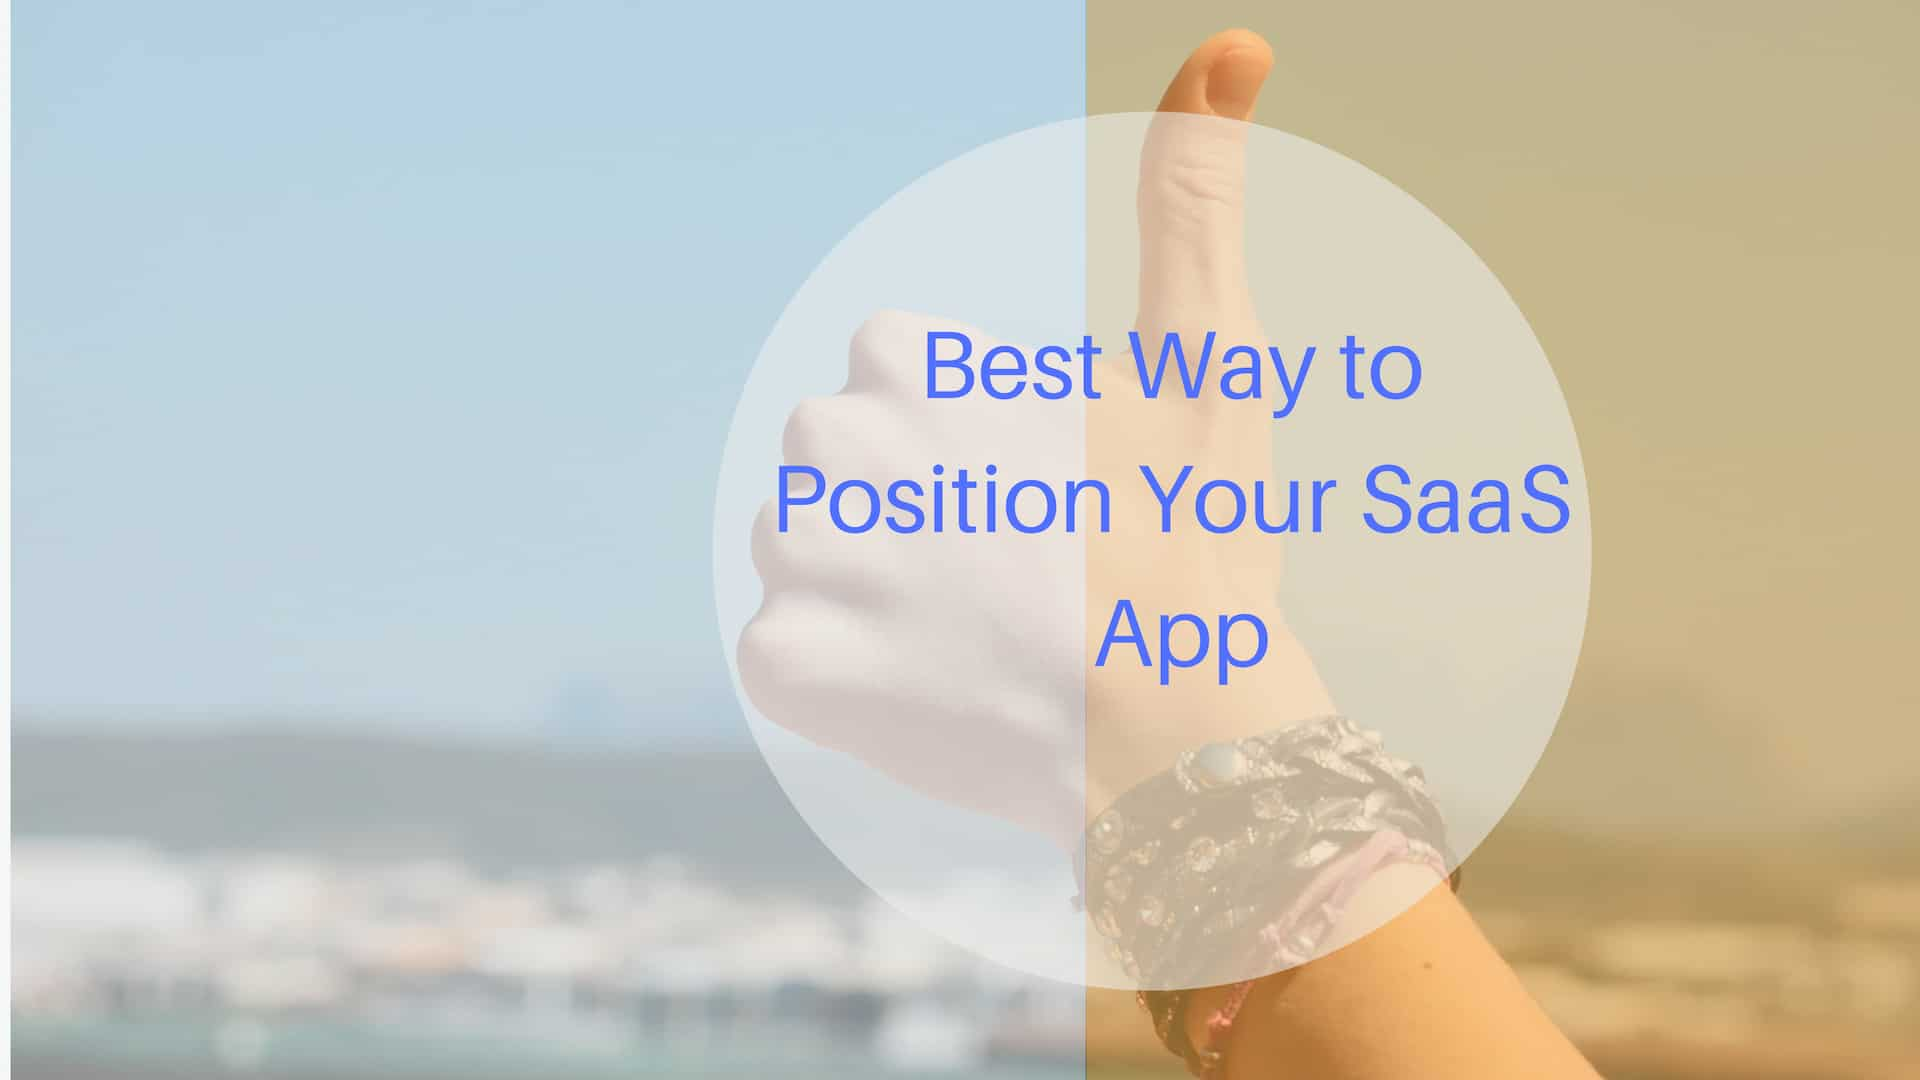 Best Way To Position Your SaaS App